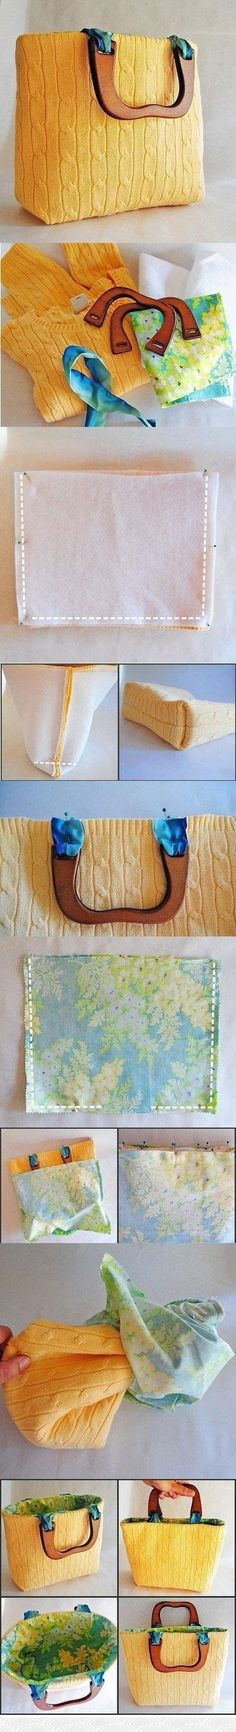 Recycle Sweater into Handbag